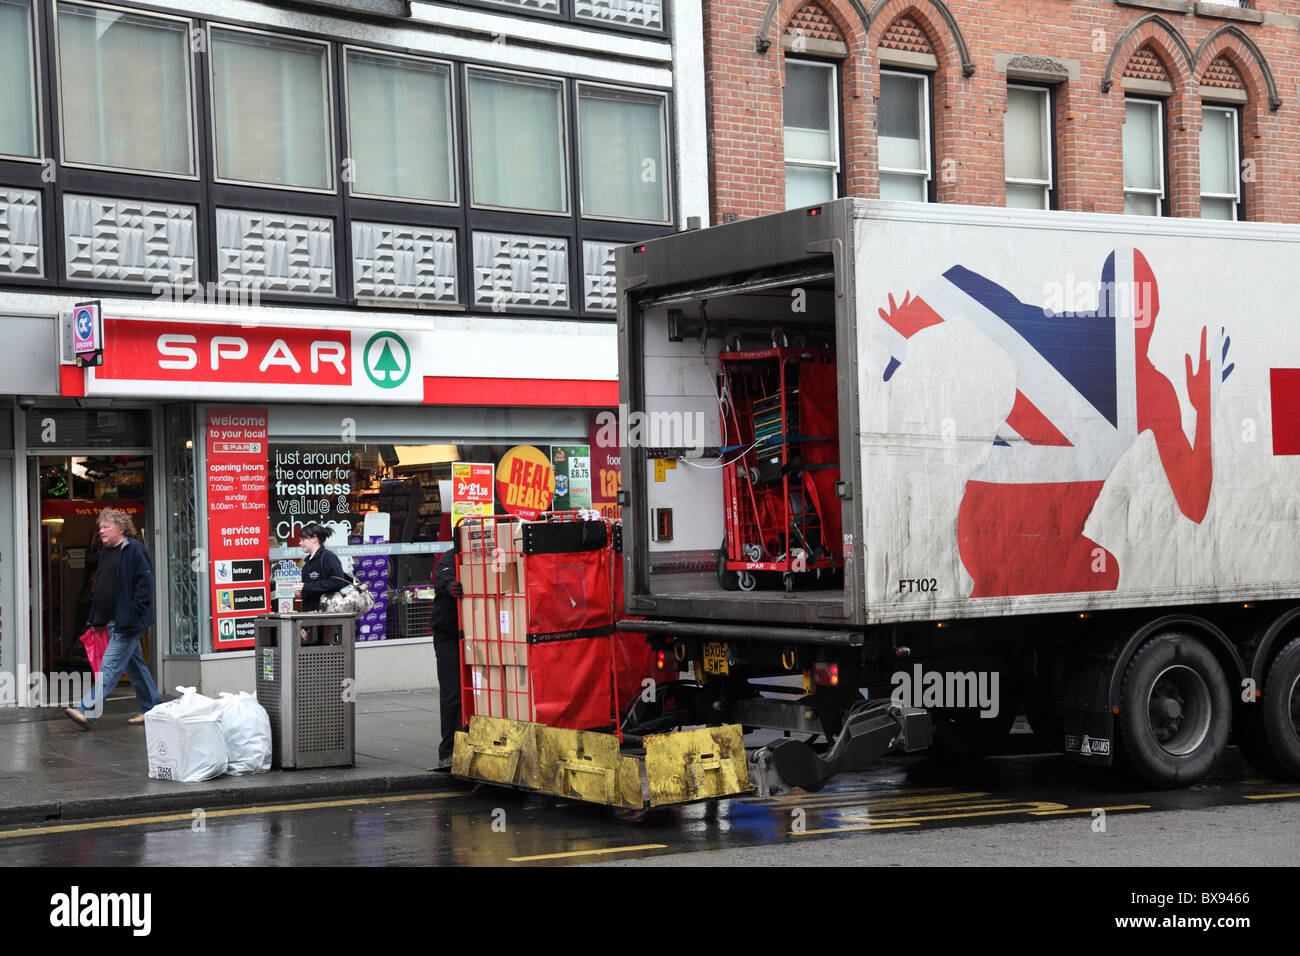 6fc3693220 A truck delivering to Spar convenience store in a U. K. city. - Stock Image